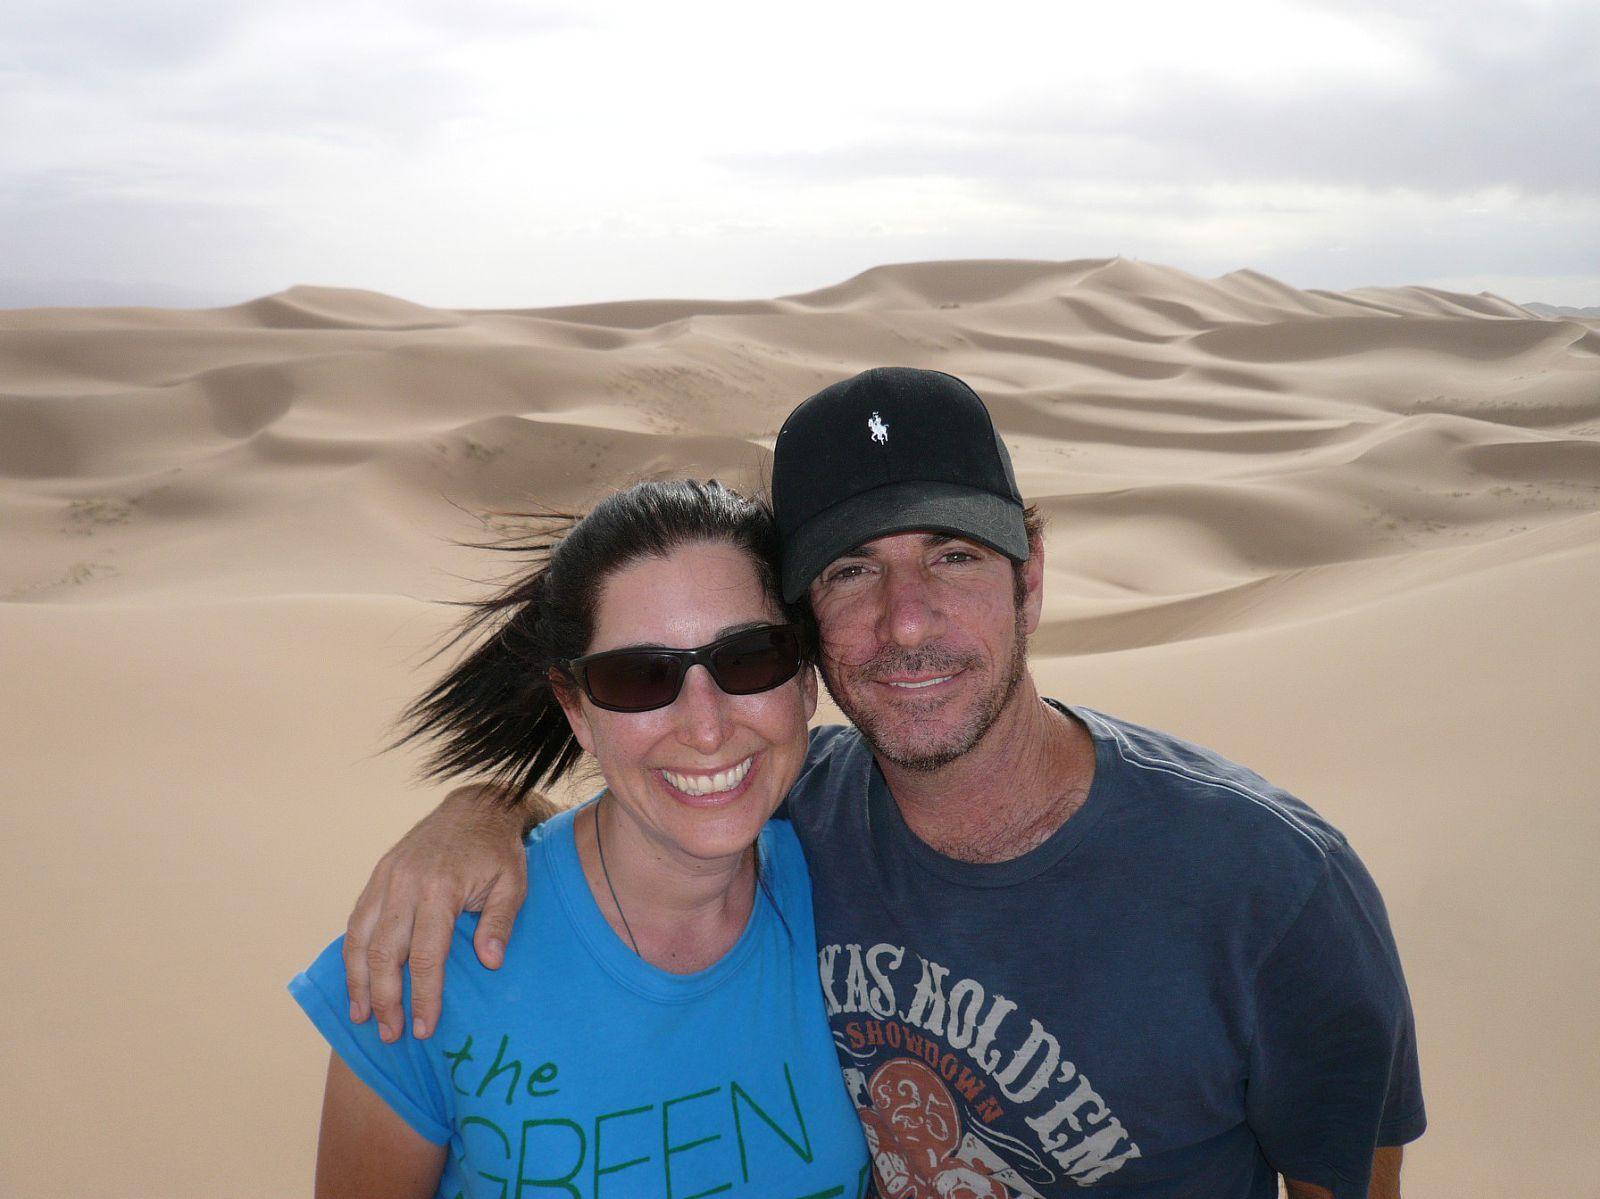 Lisa and George by exotic sand dunes during their travels.